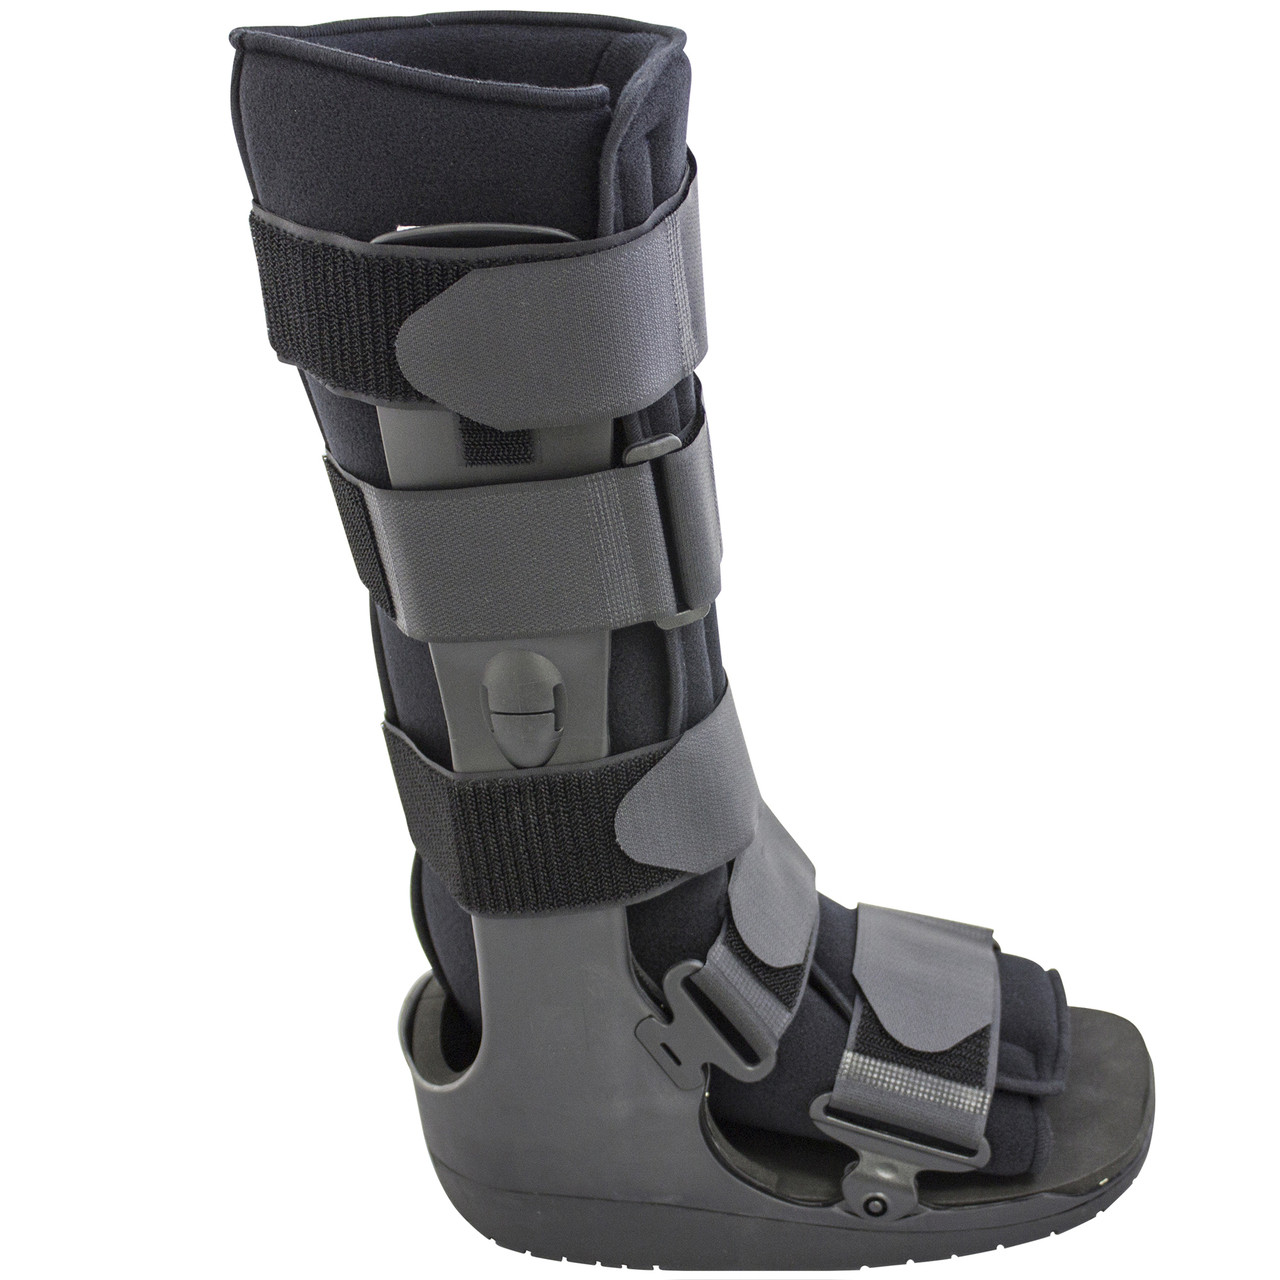 Premium Walking Cast Fracture Boot